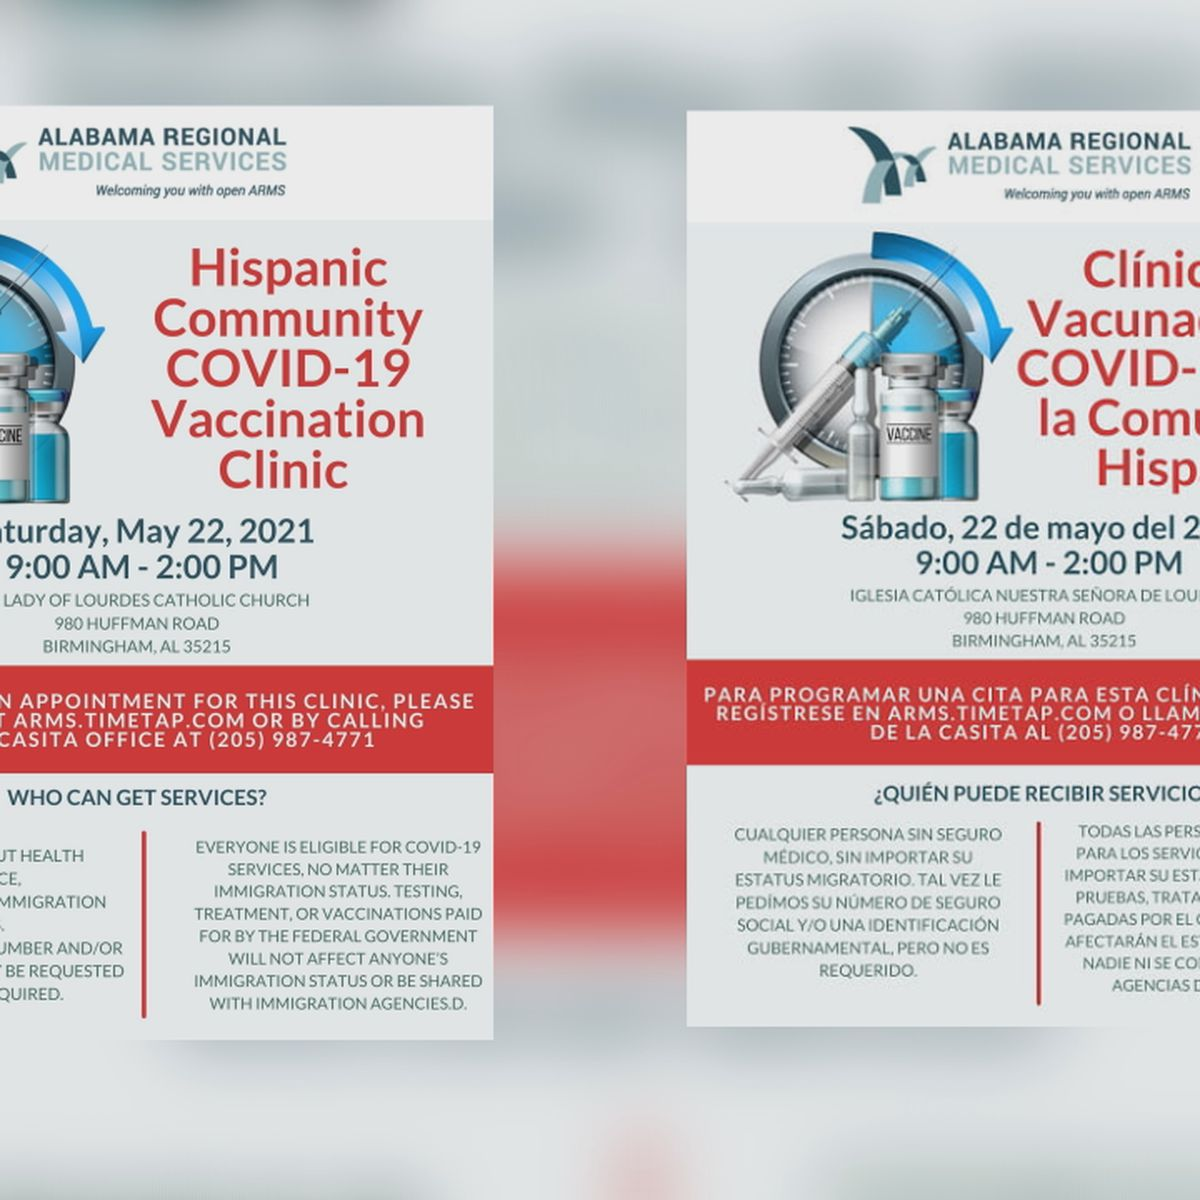 AL Regional Medical Services offering incentives to Hispanic community to get COVID-19 vaccine